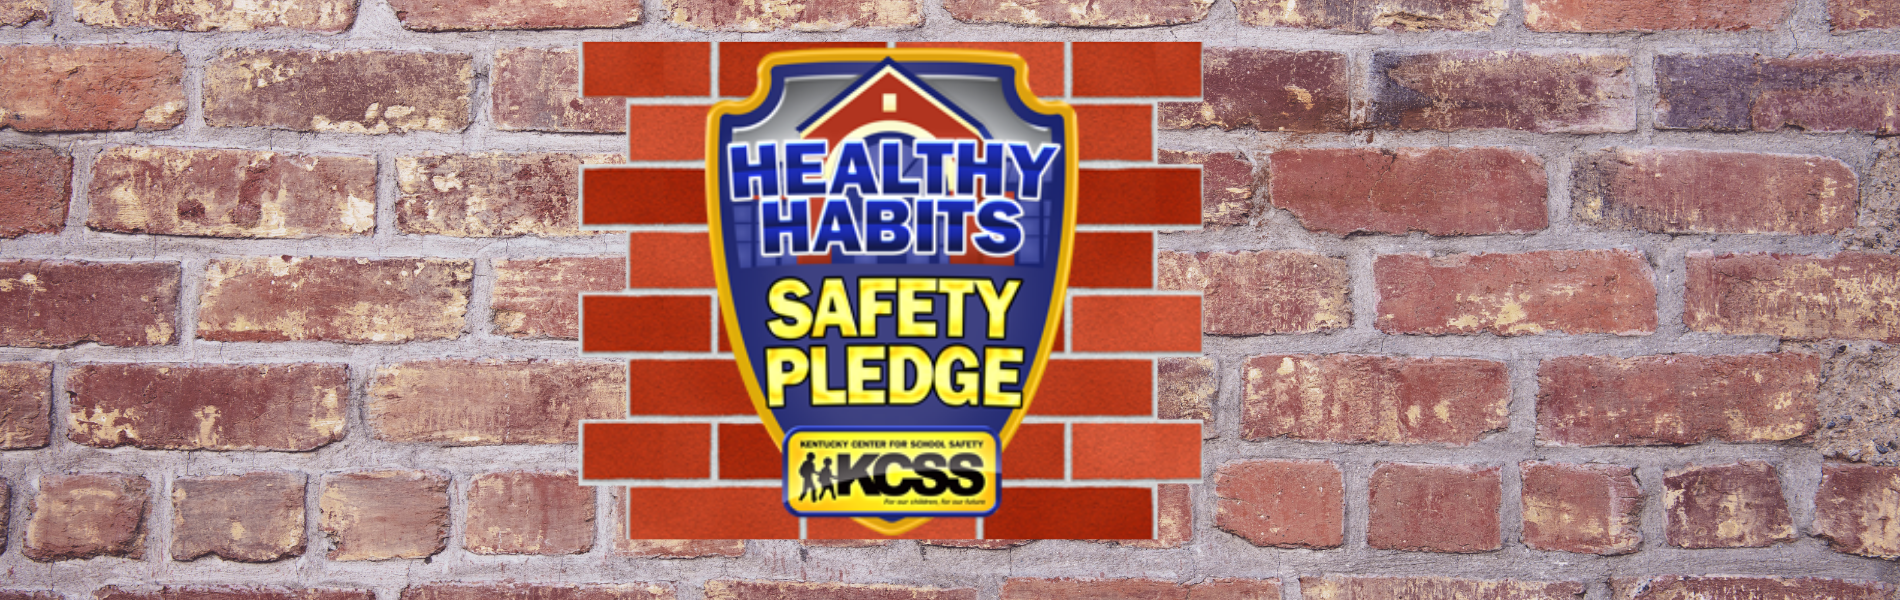 Health Habit Pledge